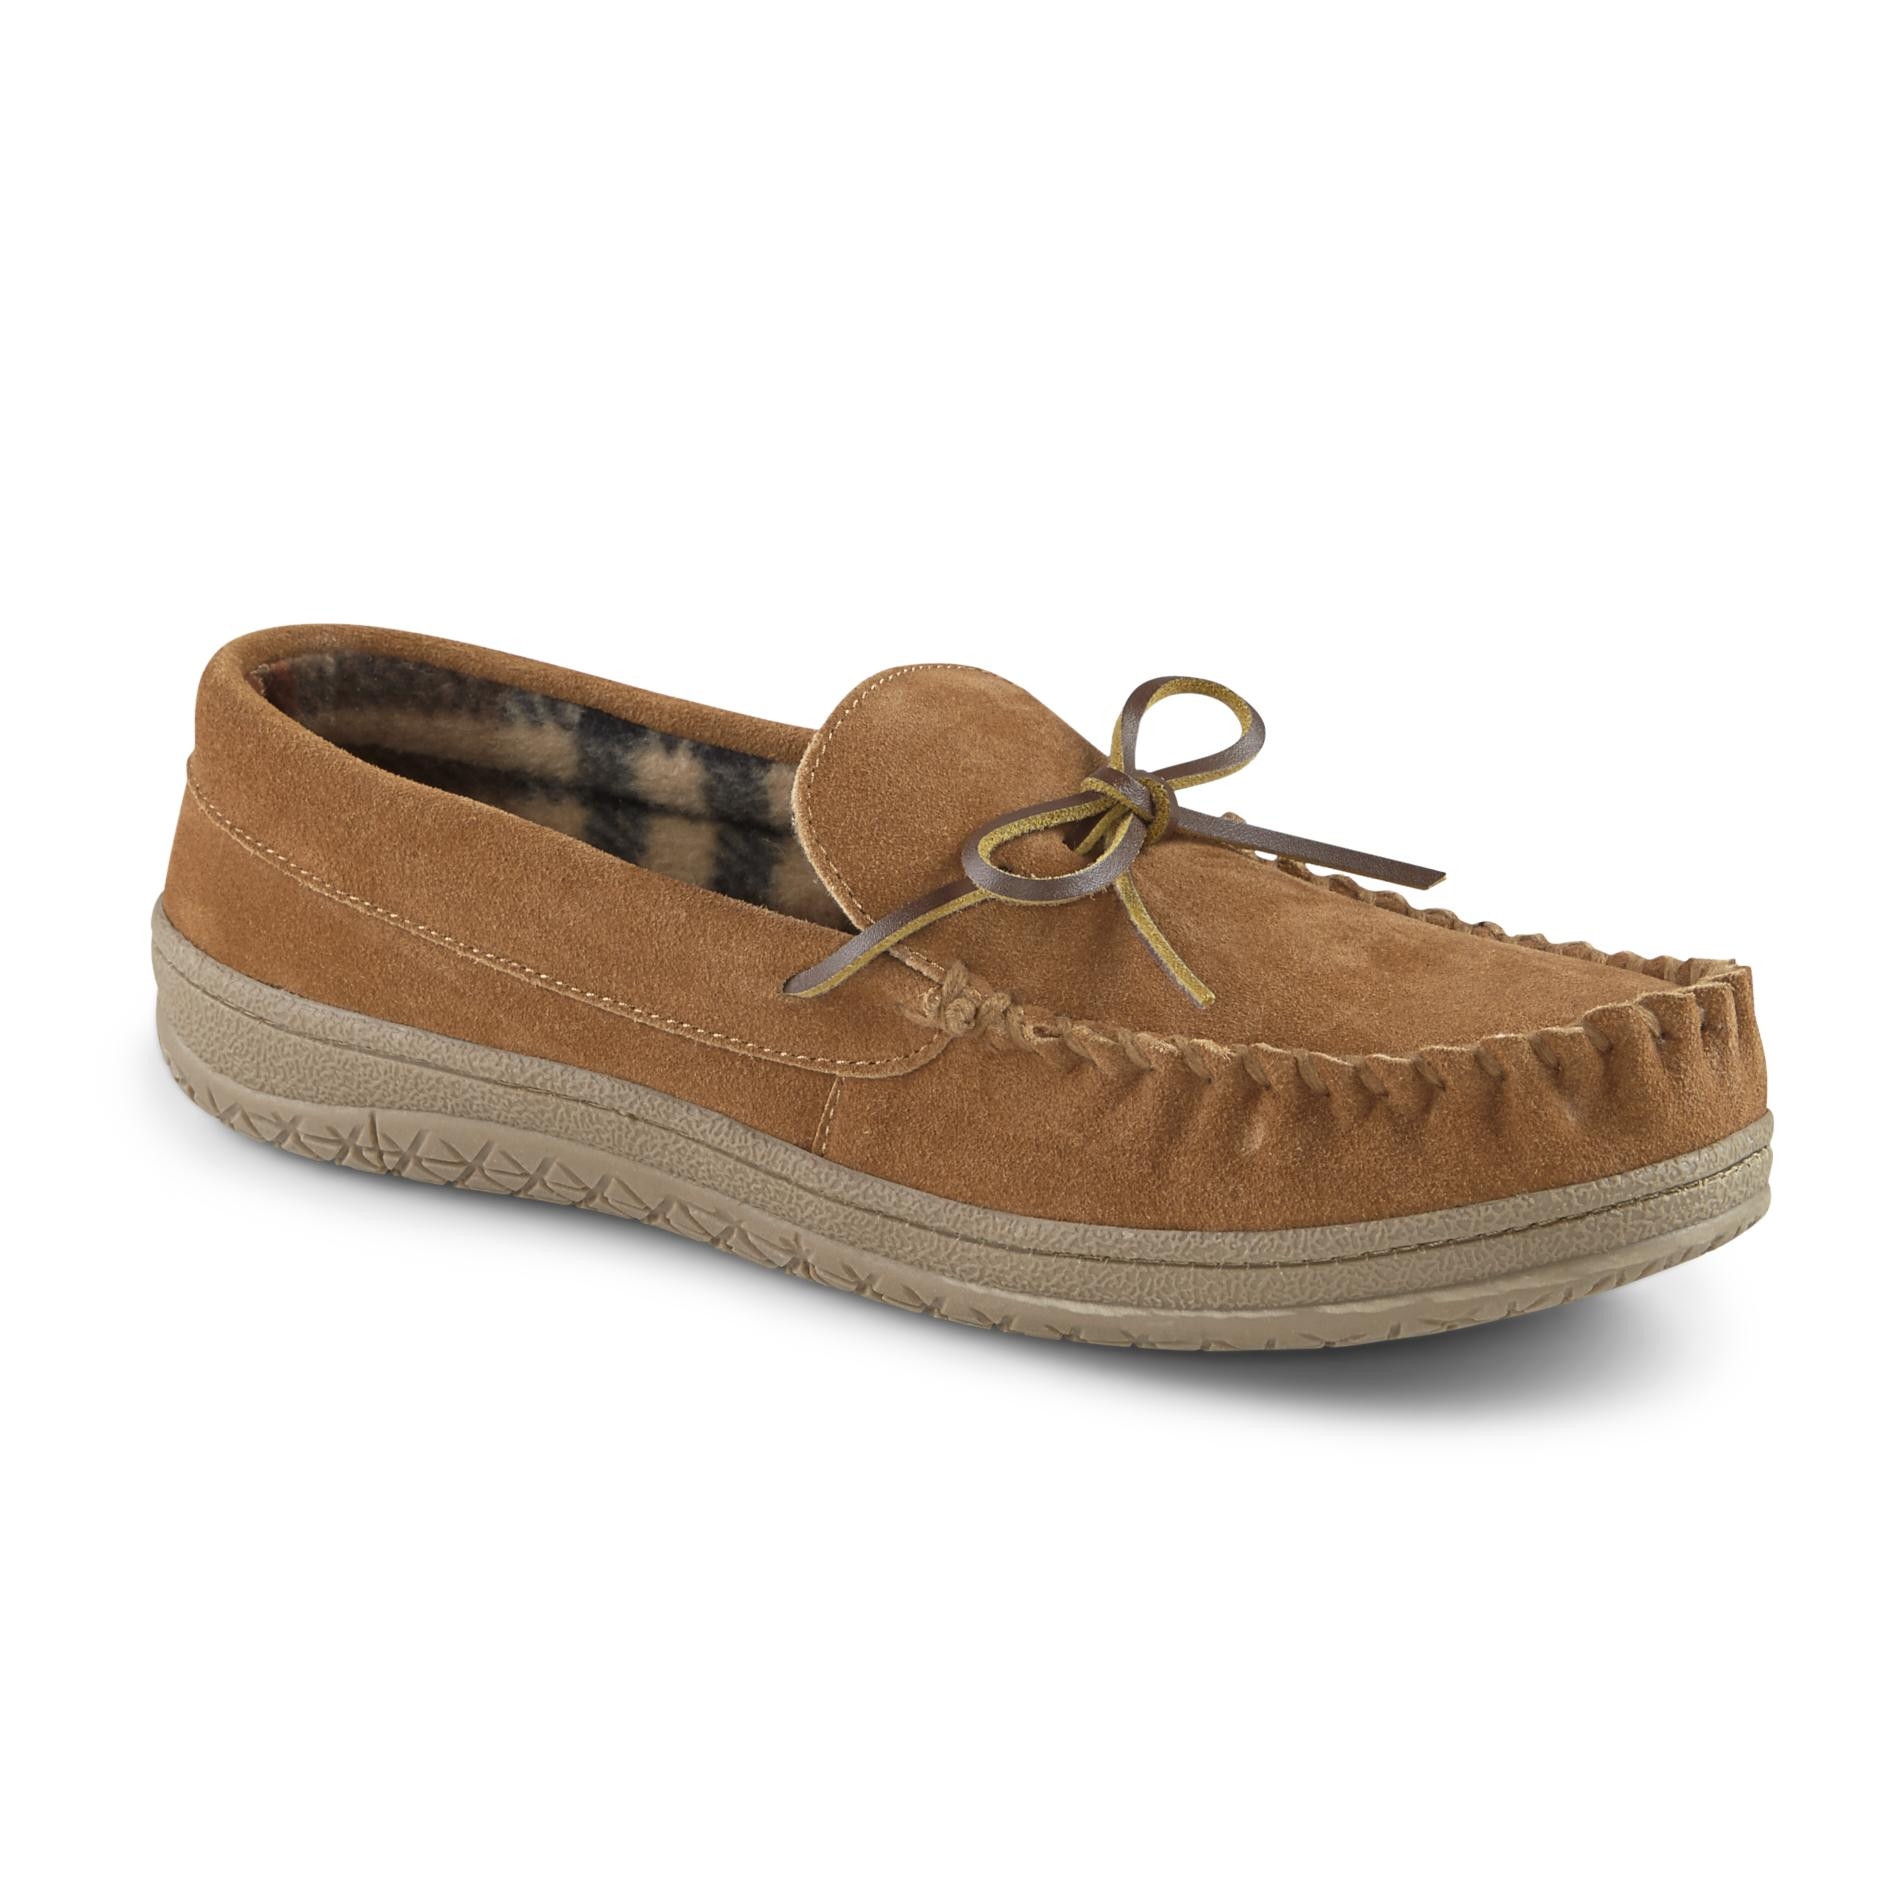 Mens Bedroom Shoes  Roebuck & Co Men's Paxton Slip Moccasin Slippers Sears